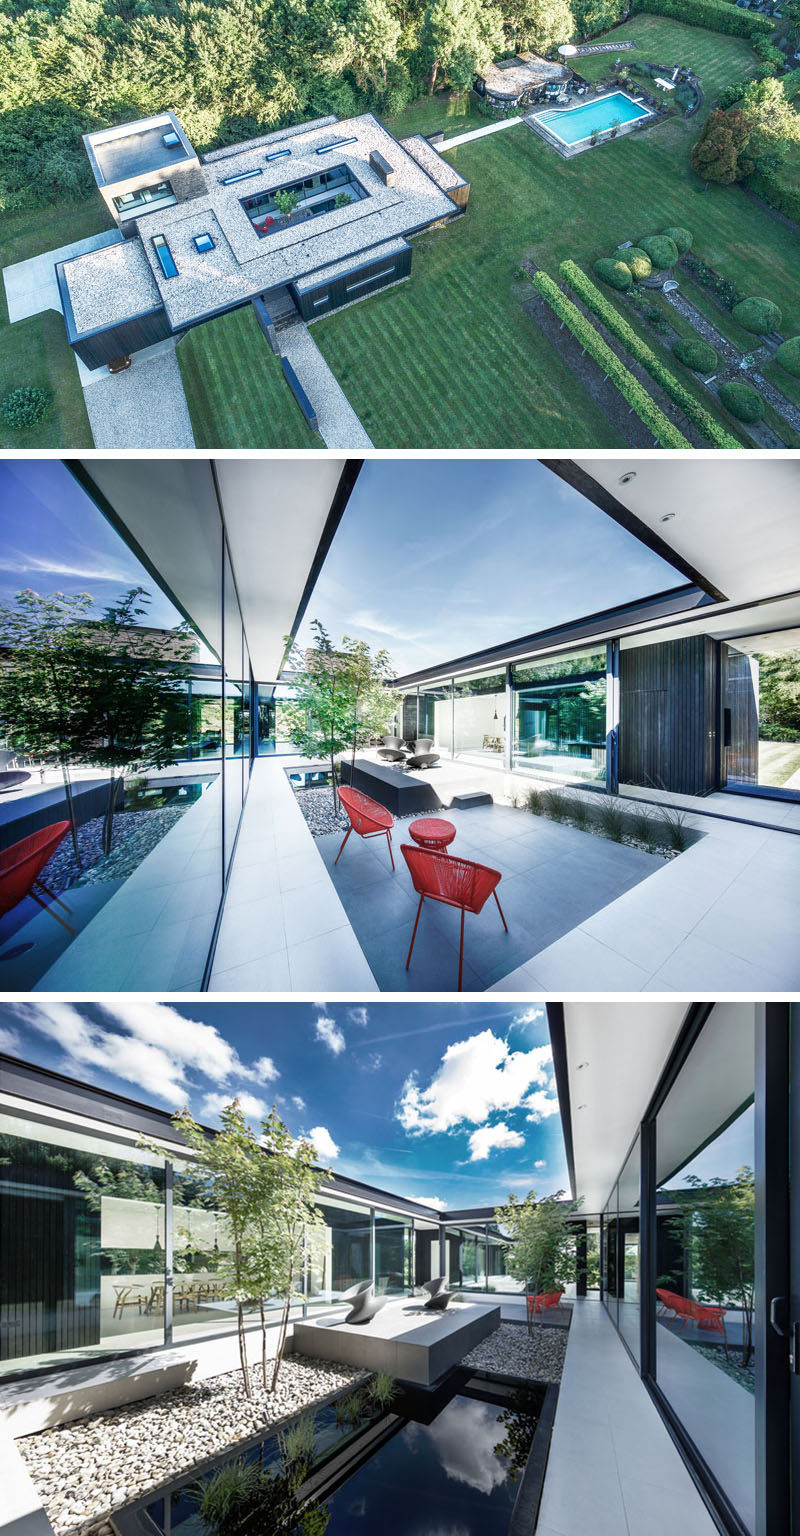 From above, you can see that the interior spaces of this modern house wrap around a central courtyard that provides year round sheltered outdoor space.